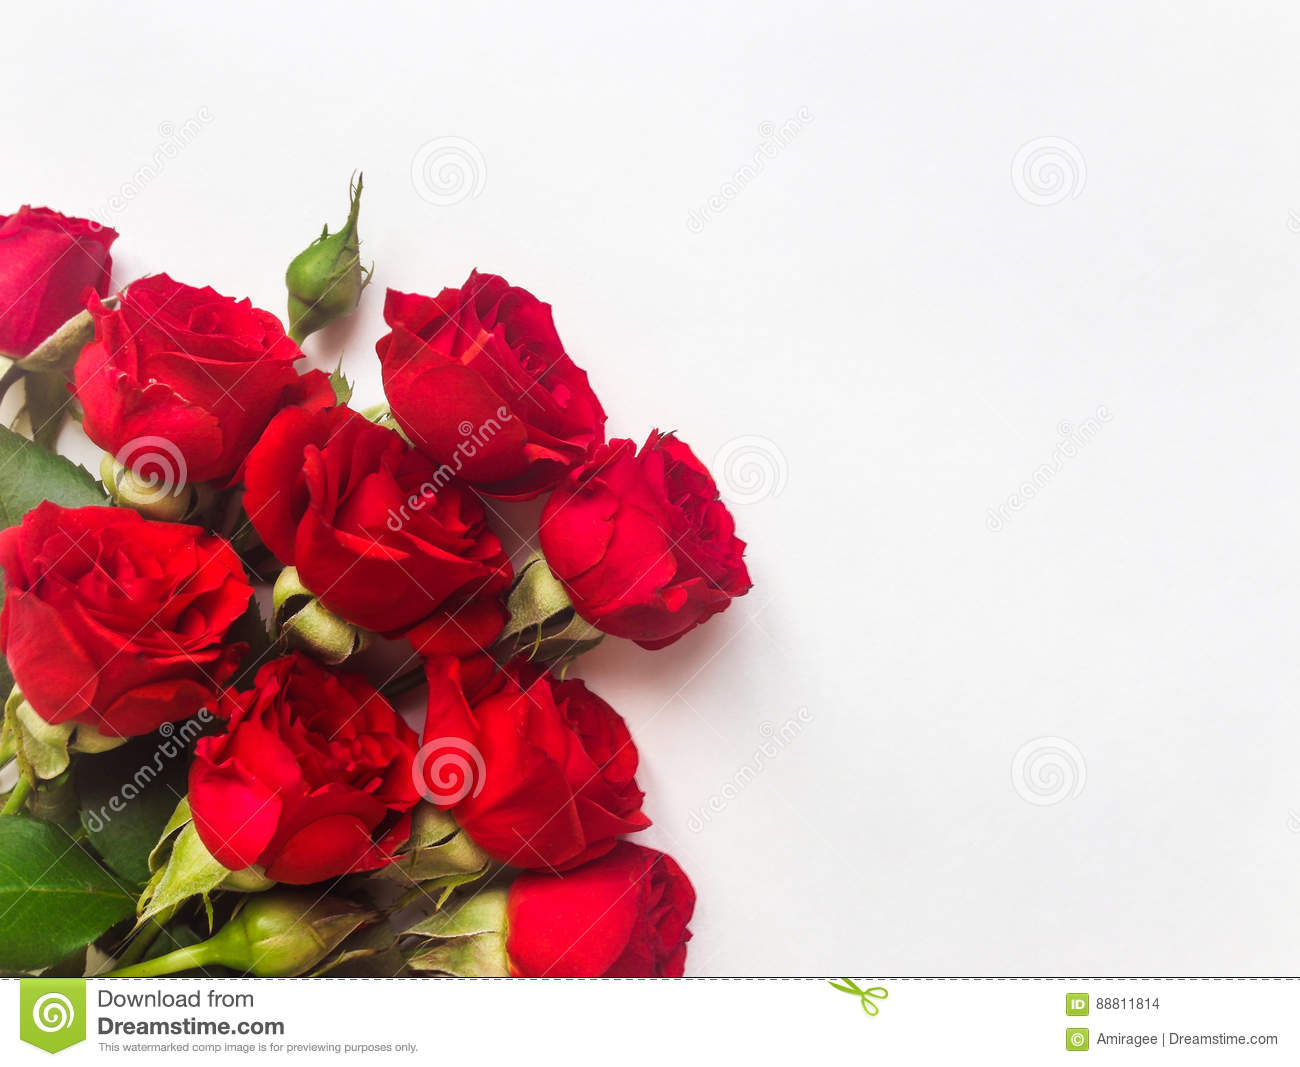 Bunch Of Small Beautiful Red Rose Flowers Isolated On White Background Romantic Gift Concept For Birthday Or Any Other Holiday Flat Lay Top View